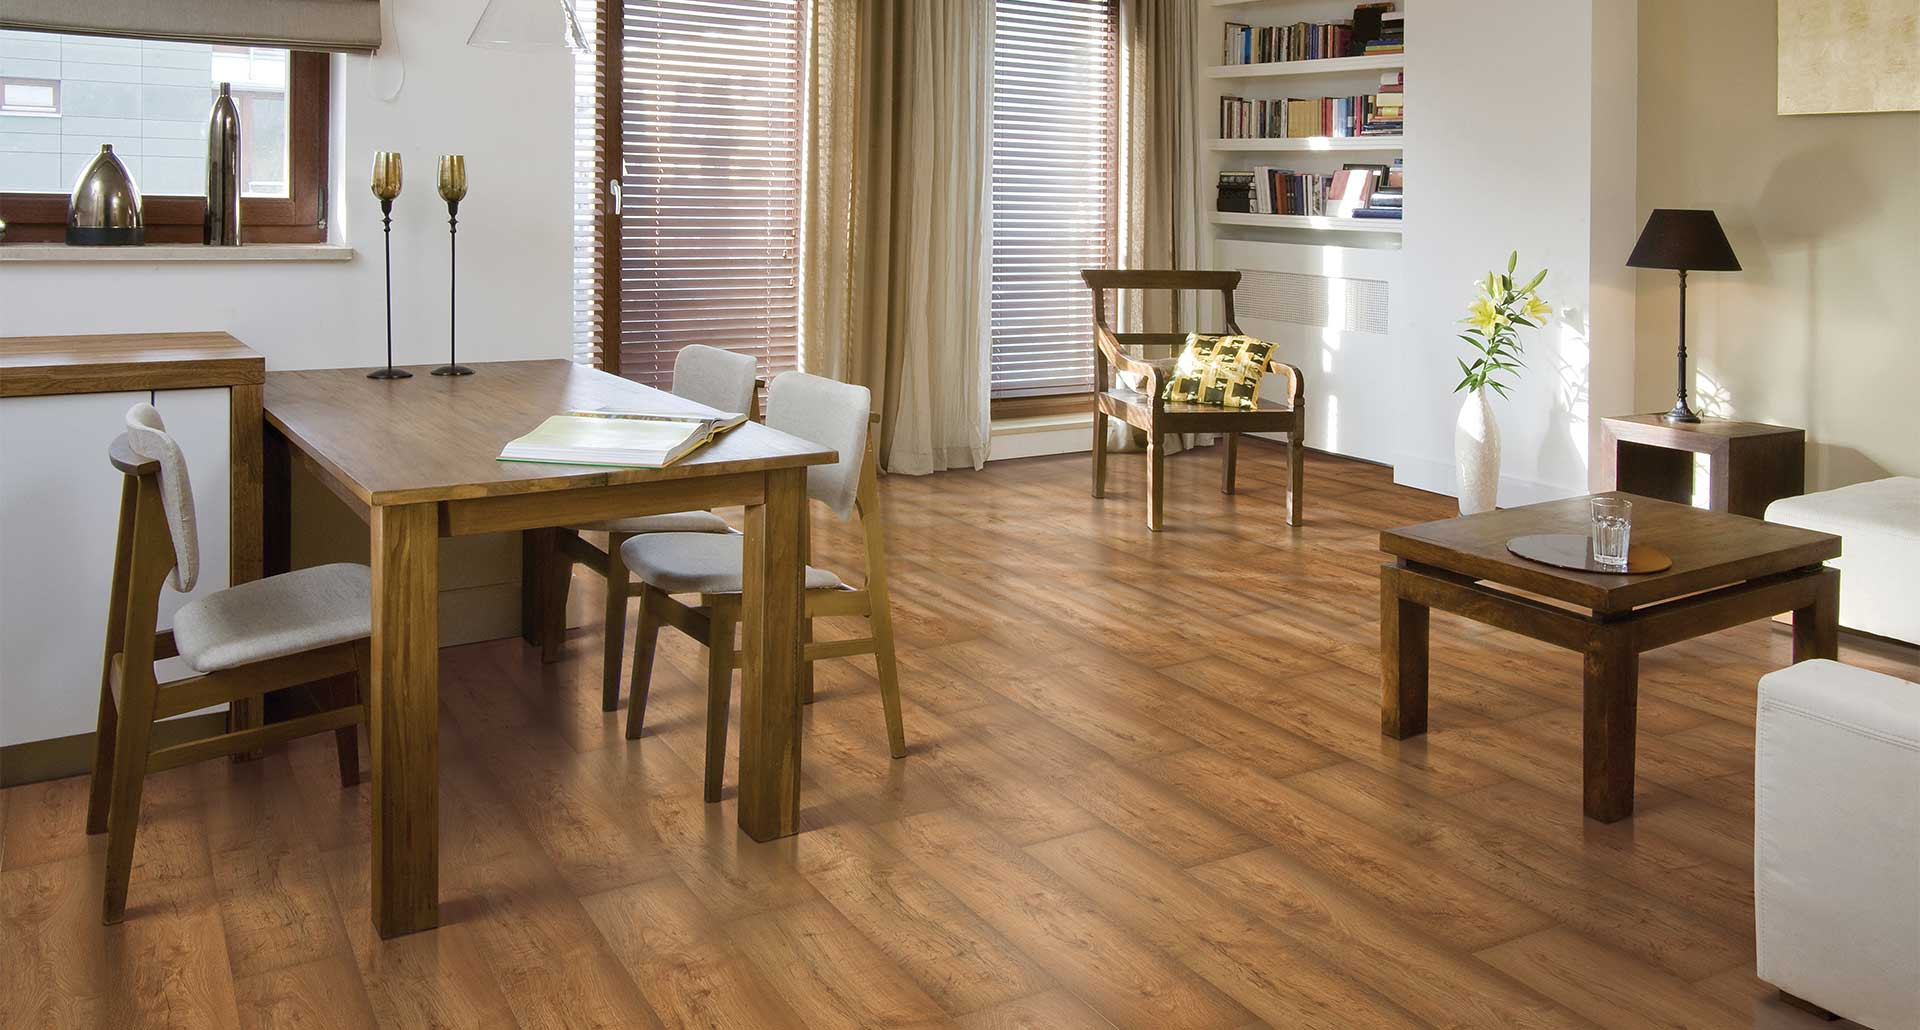 Burnished Acacia Hardwood Flooring Of Laminate Hardwood Flooring Inspiration Gallery Pergo Flooring Intended for Lf000846 Burnishedcarameloak Room Lrg Jpg